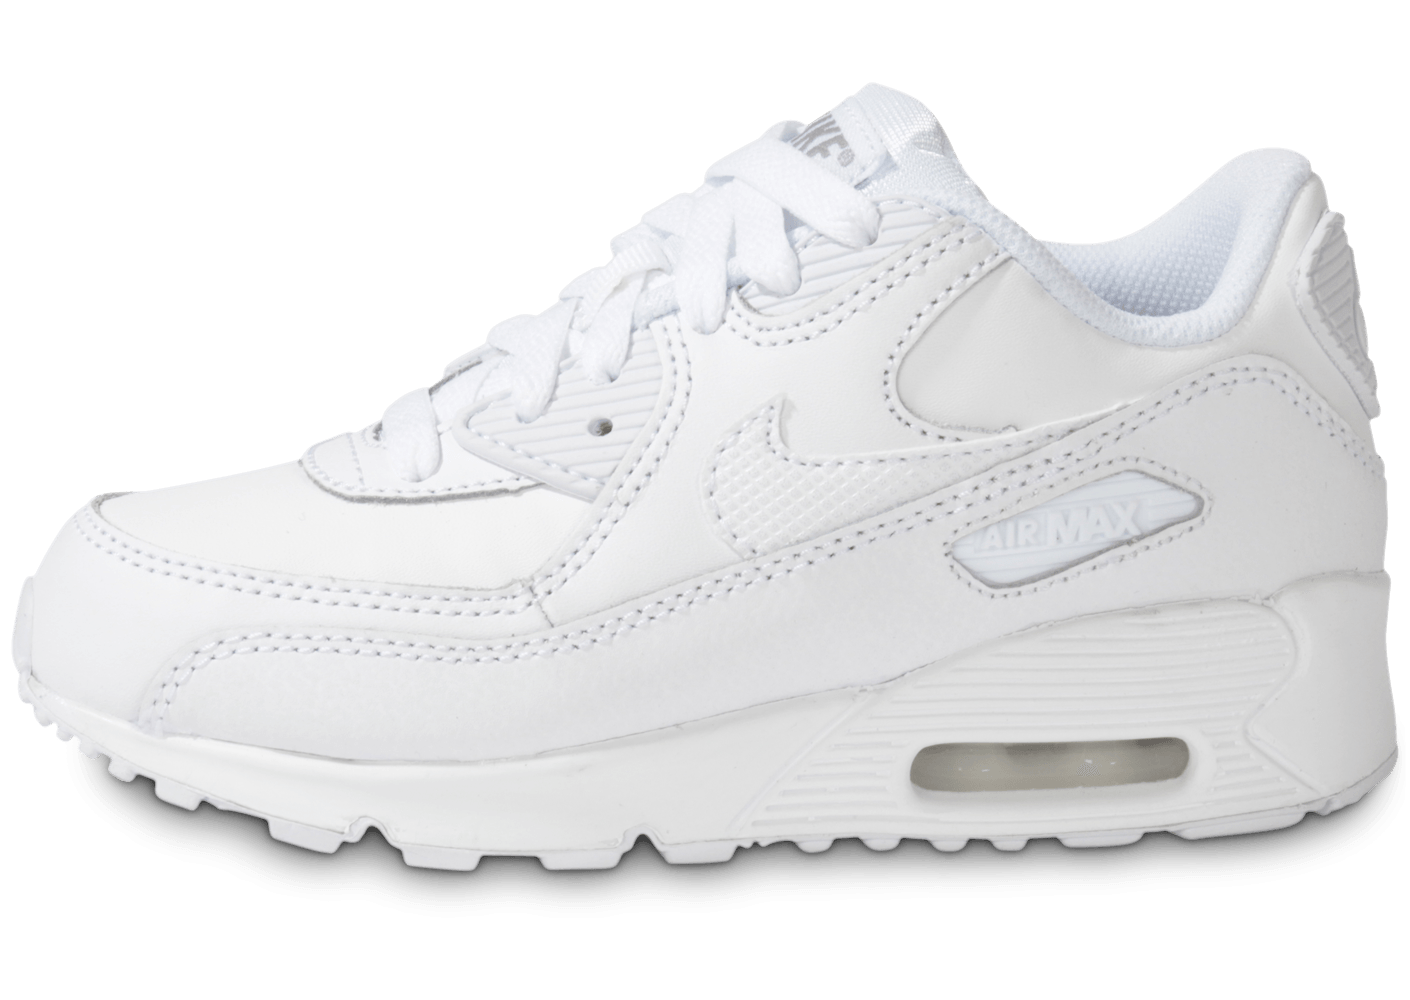 nike air max 90 blanche enfant chaussures chaussures chausport. Black Bedroom Furniture Sets. Home Design Ideas